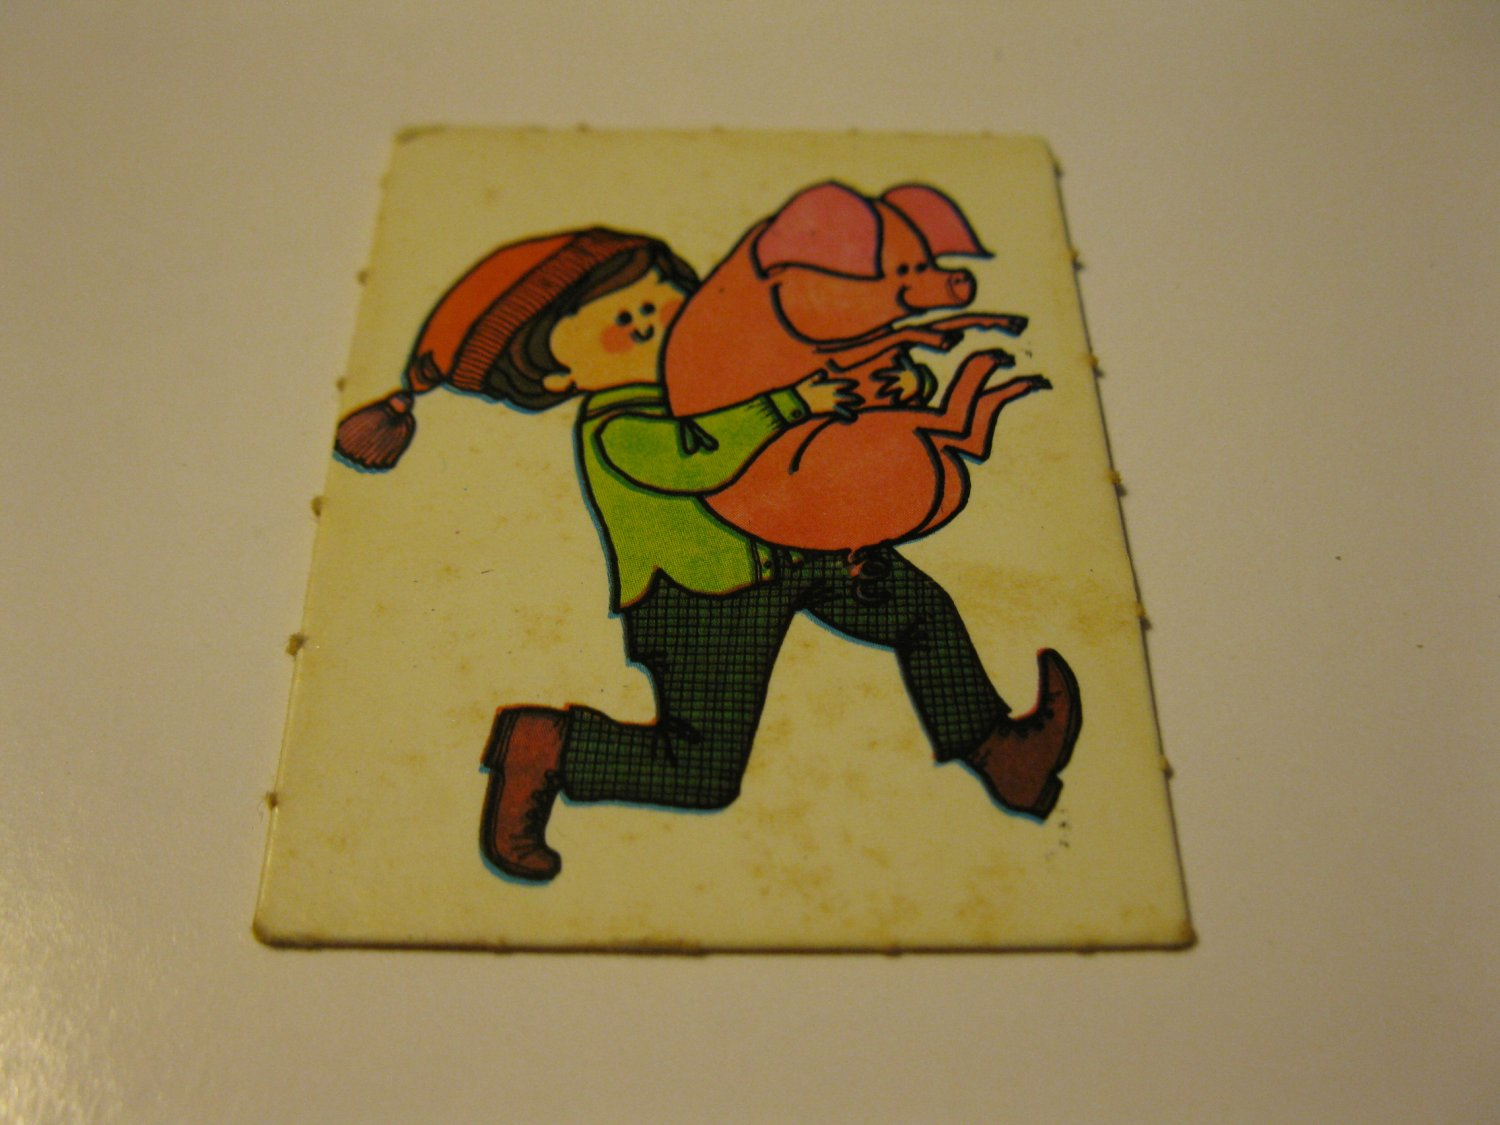 1971 Mother Goose Board Game Piece: Game card #2